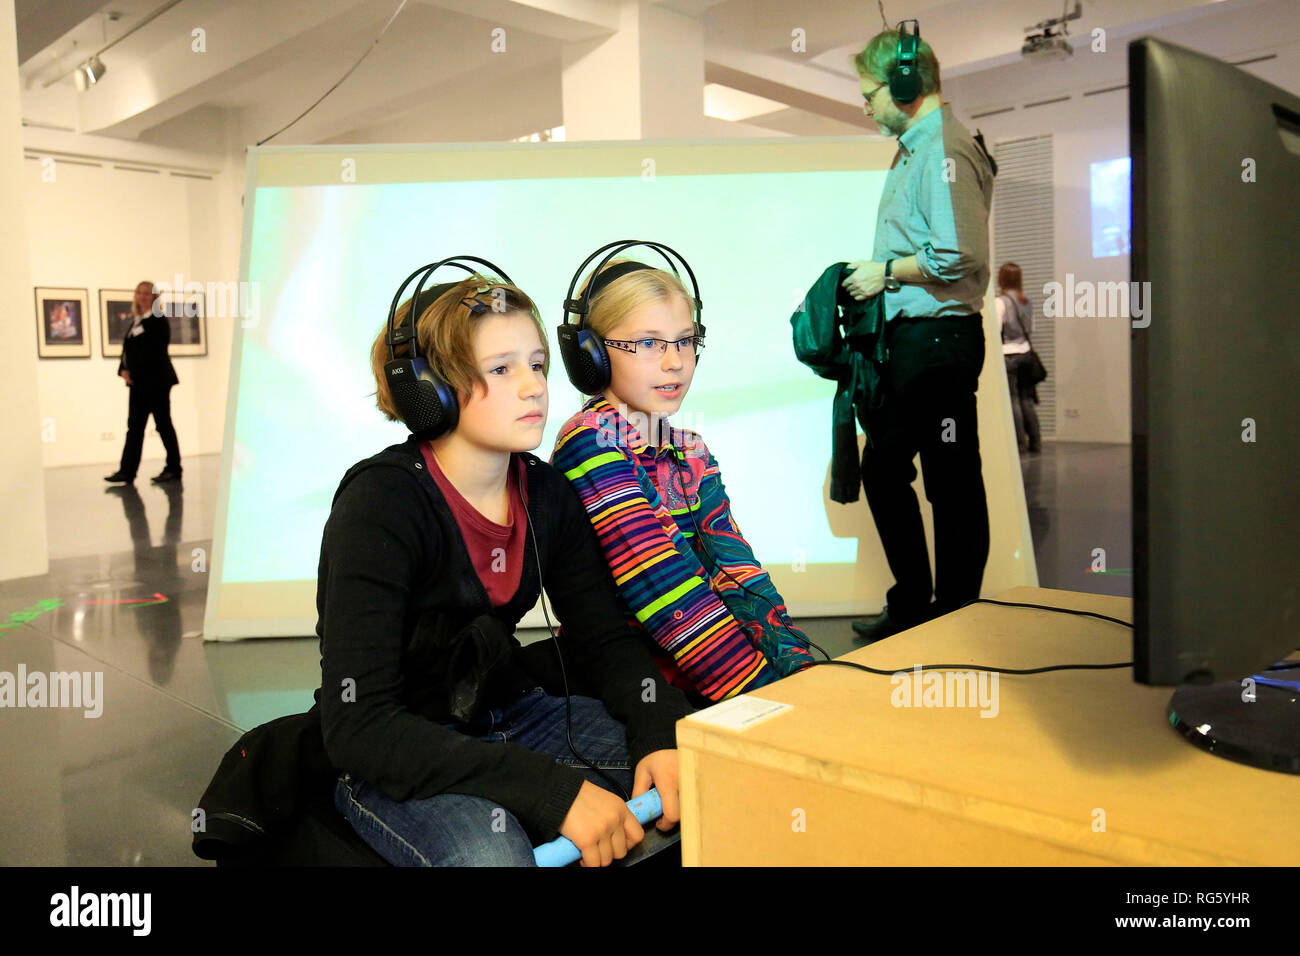 Family visits the exhibition, WissensNacht Ruhr, a project for the climate metropolis Ruhr 2022, here in Dortmunder U, Familie besucht die Ausstellung Stock Photo